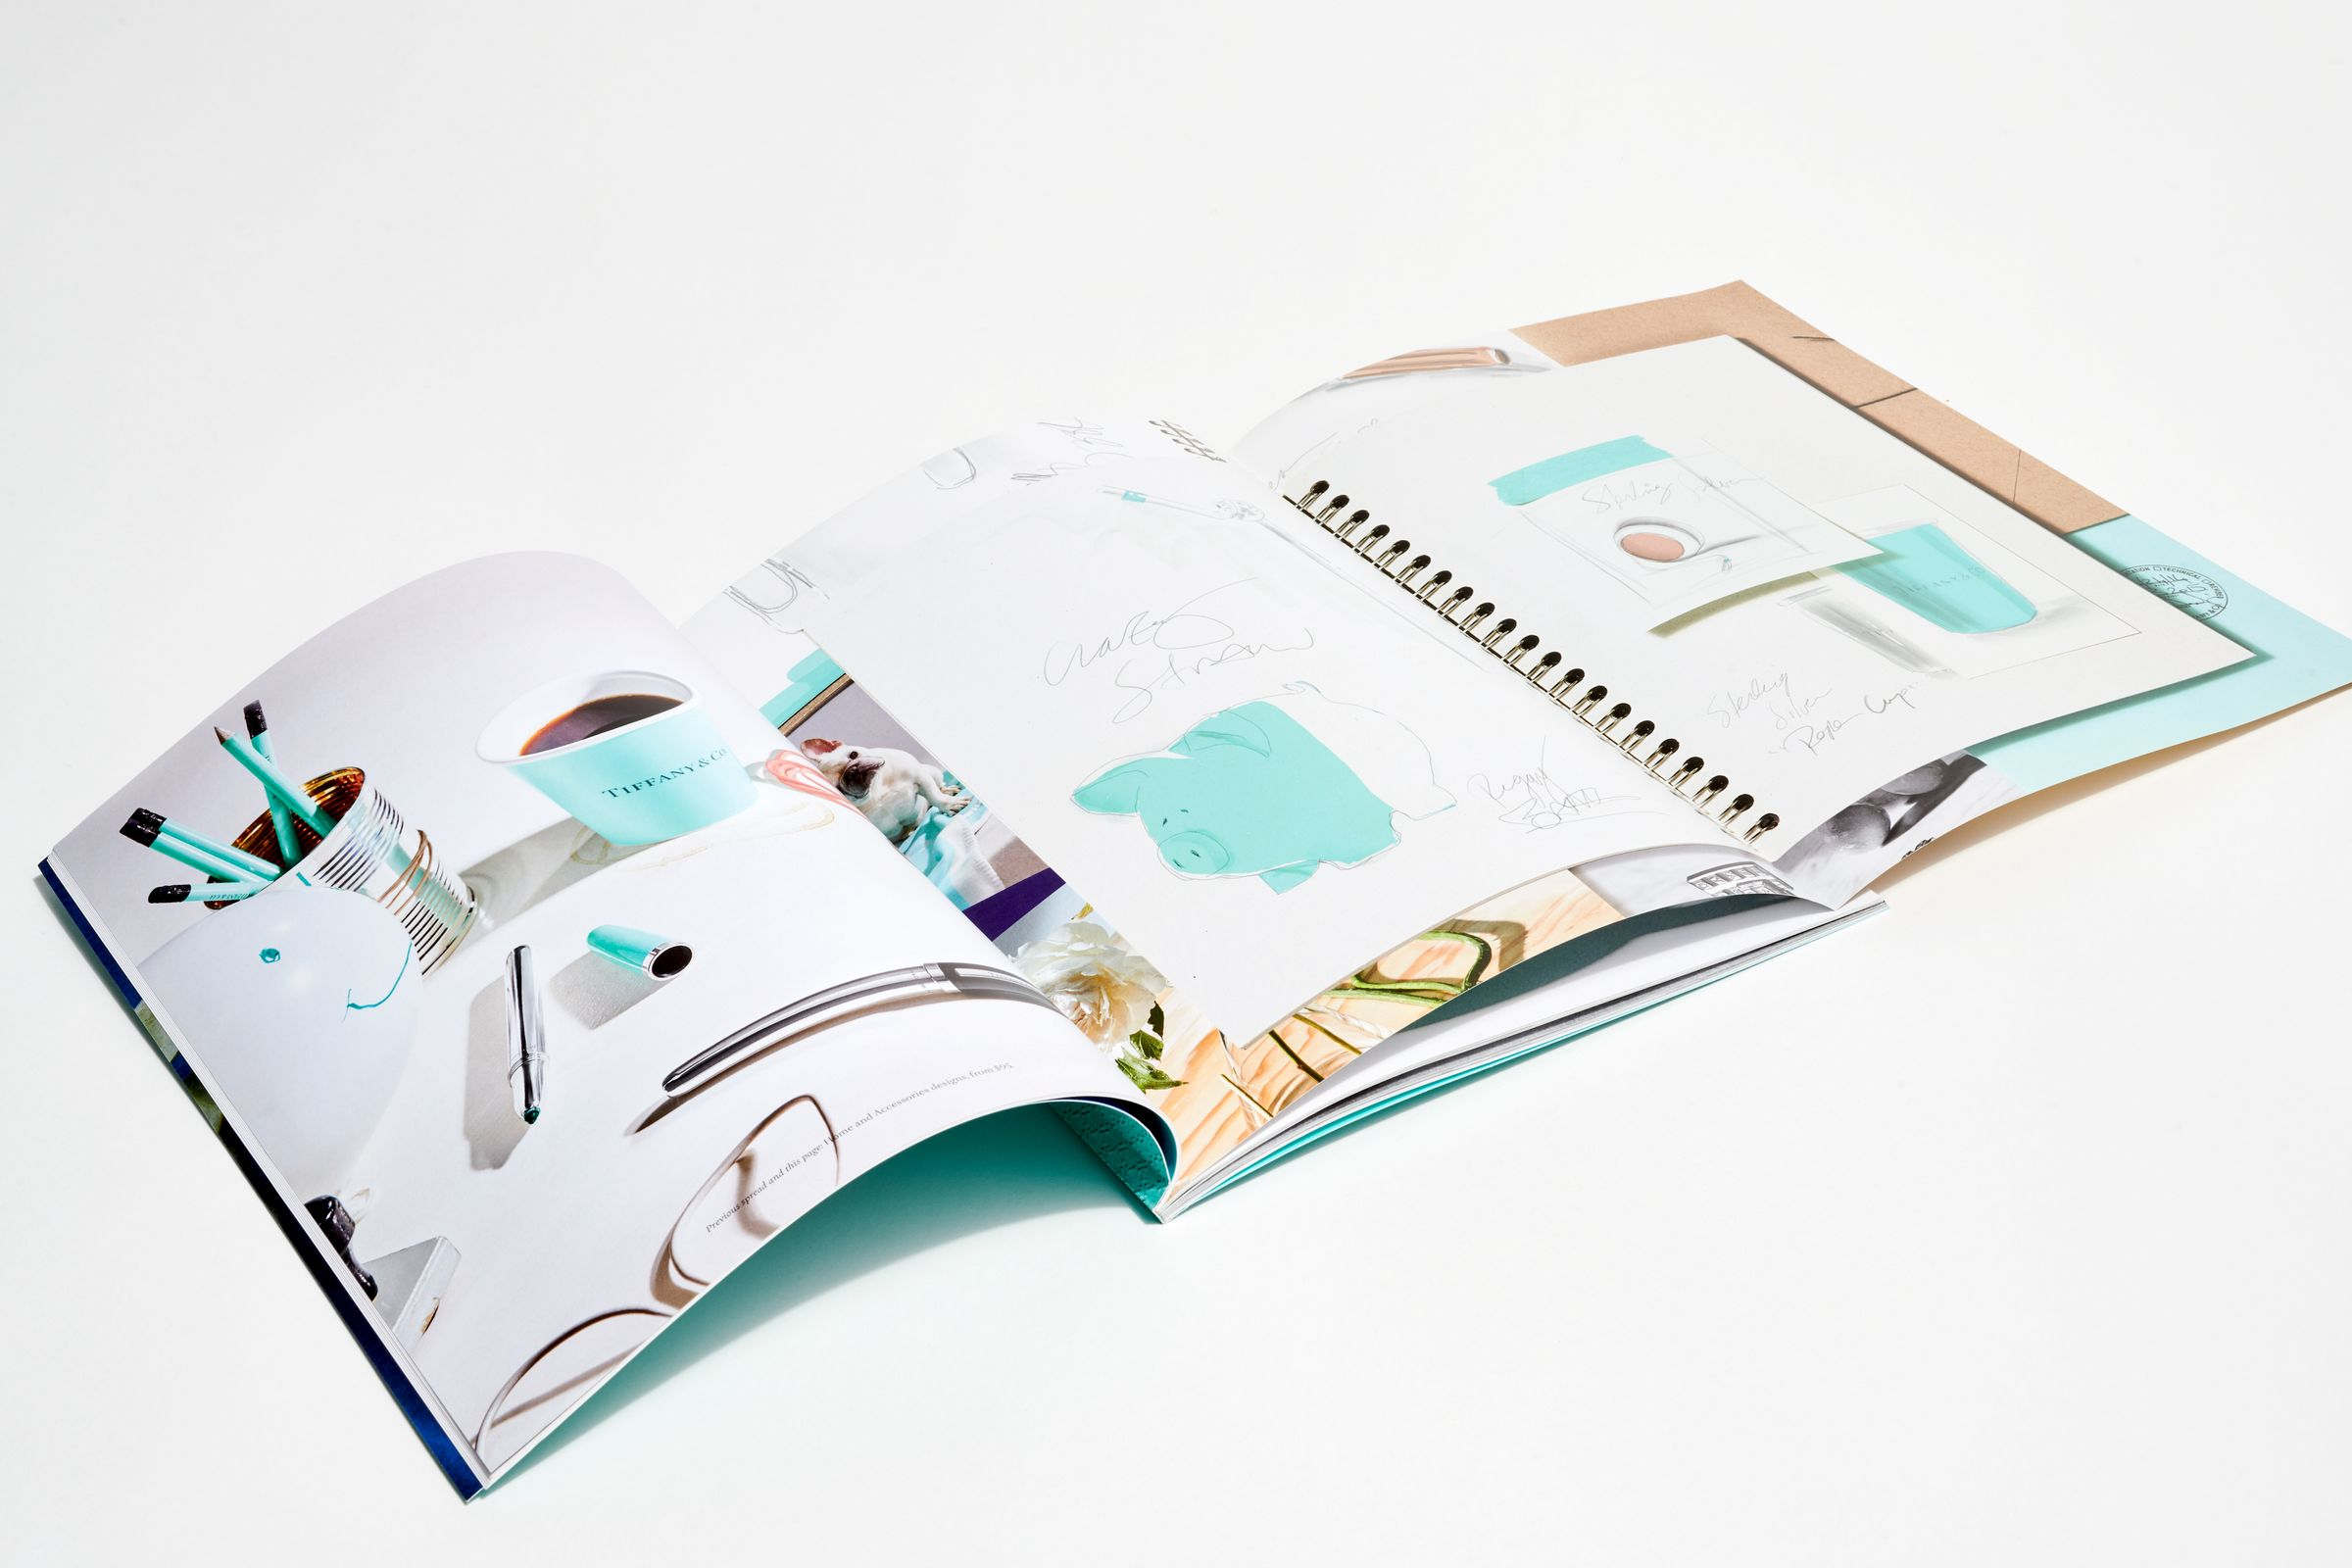 This is Tiffany magazine Issue 6 fold out spread layout